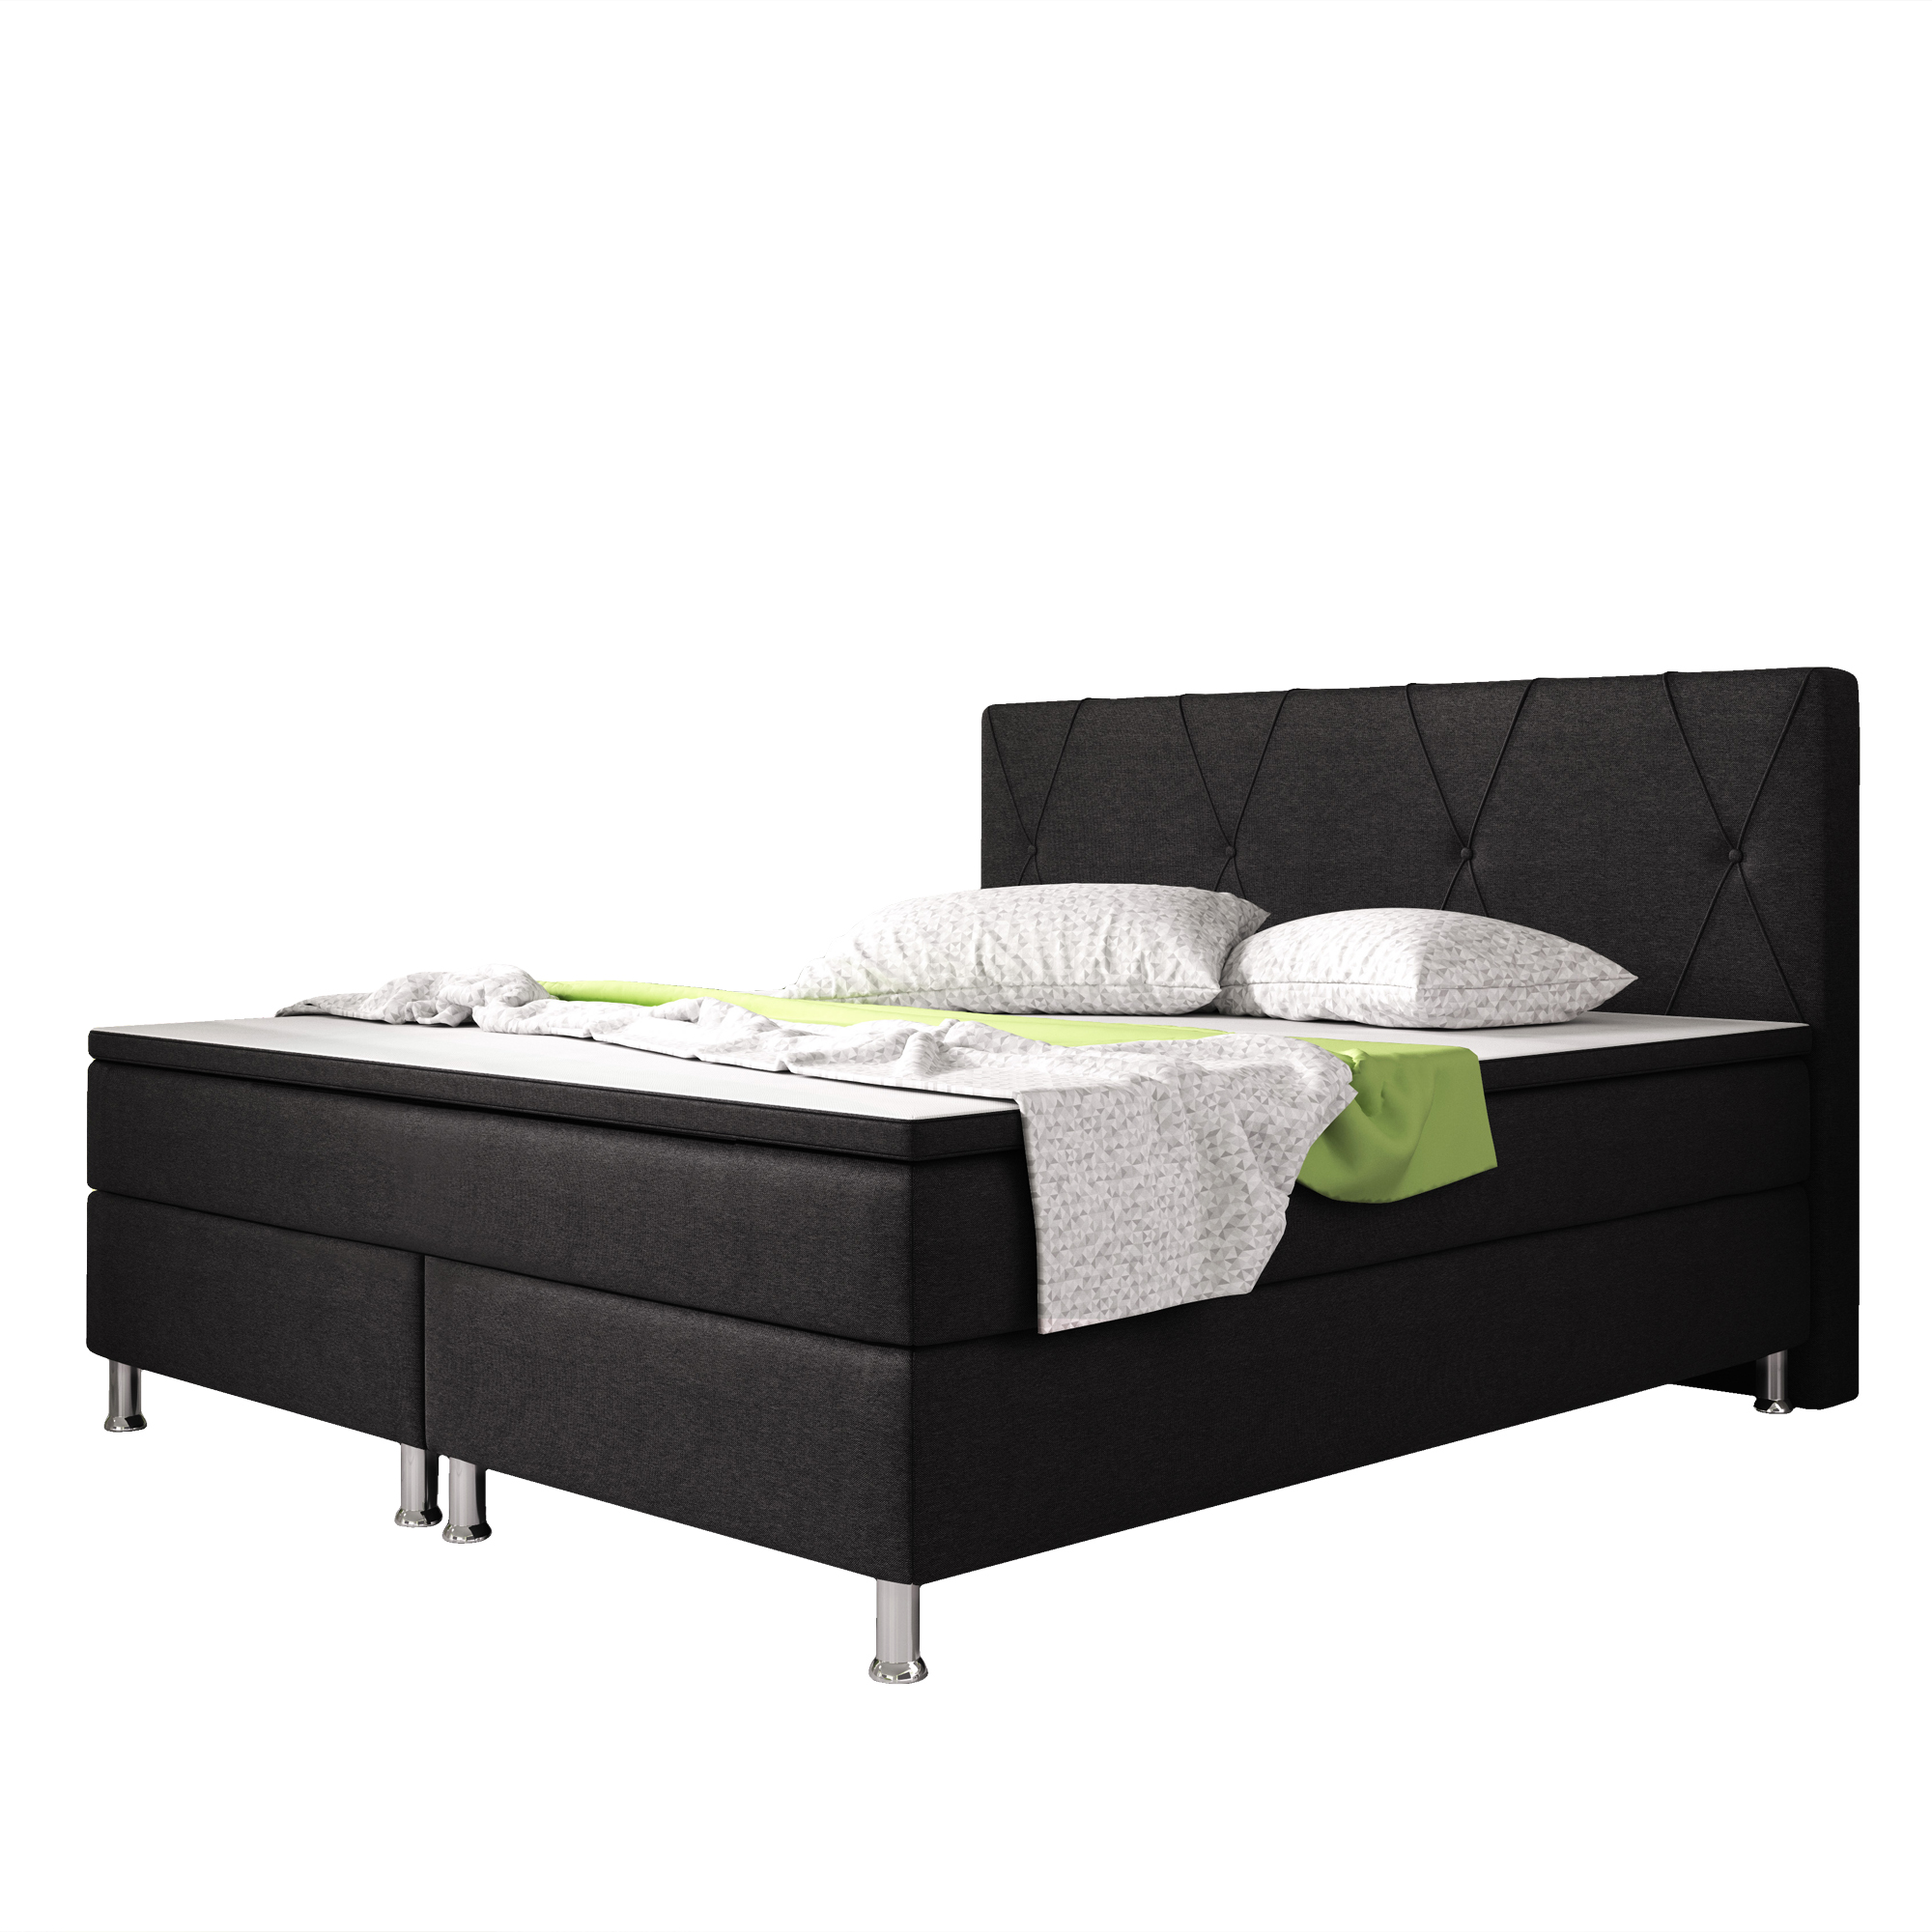 boxspringbett boston 180x200 webstoff schwarz schlafen boxspringbetten. Black Bedroom Furniture Sets. Home Design Ideas